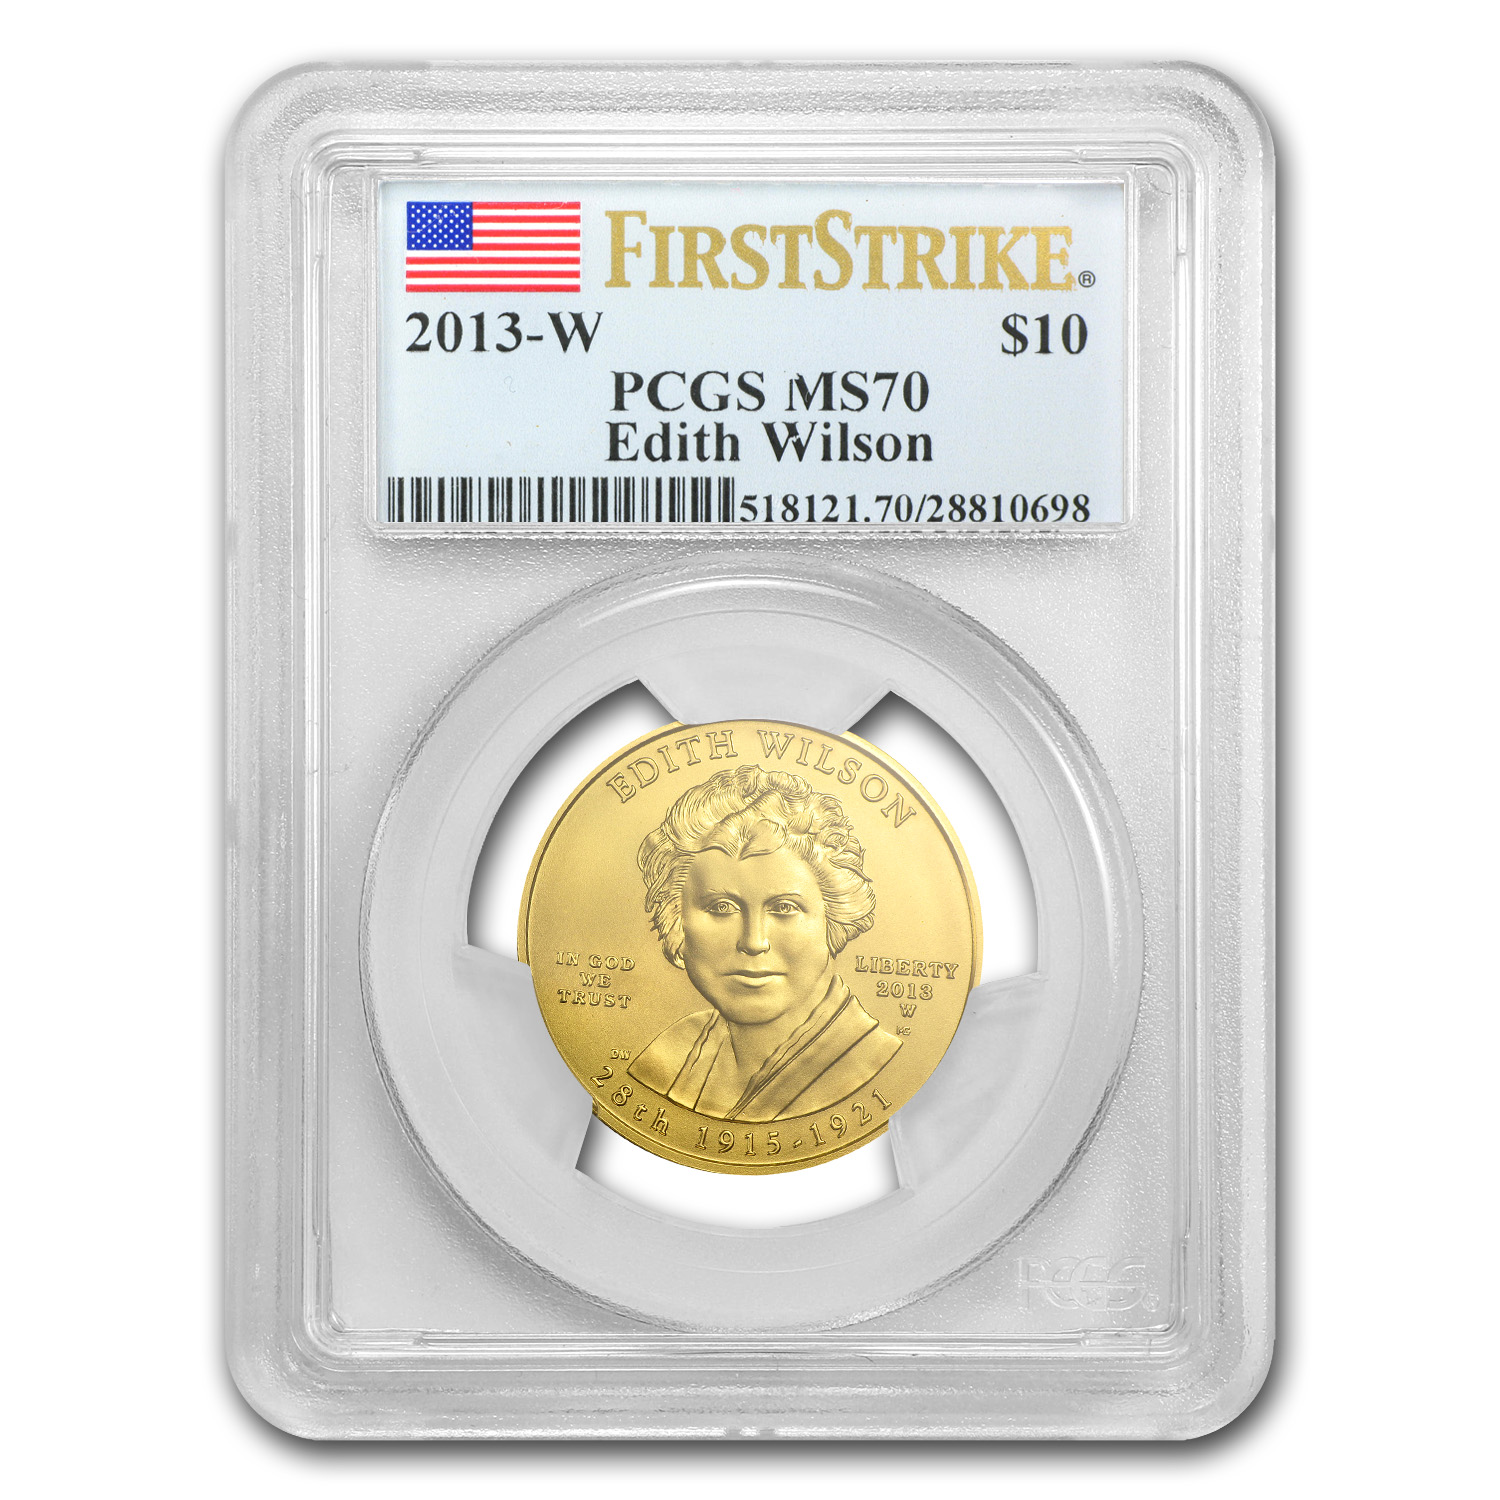 2013-W 1/2 oz Gold Edith Wilson MS-70 PCGS (First Strike)